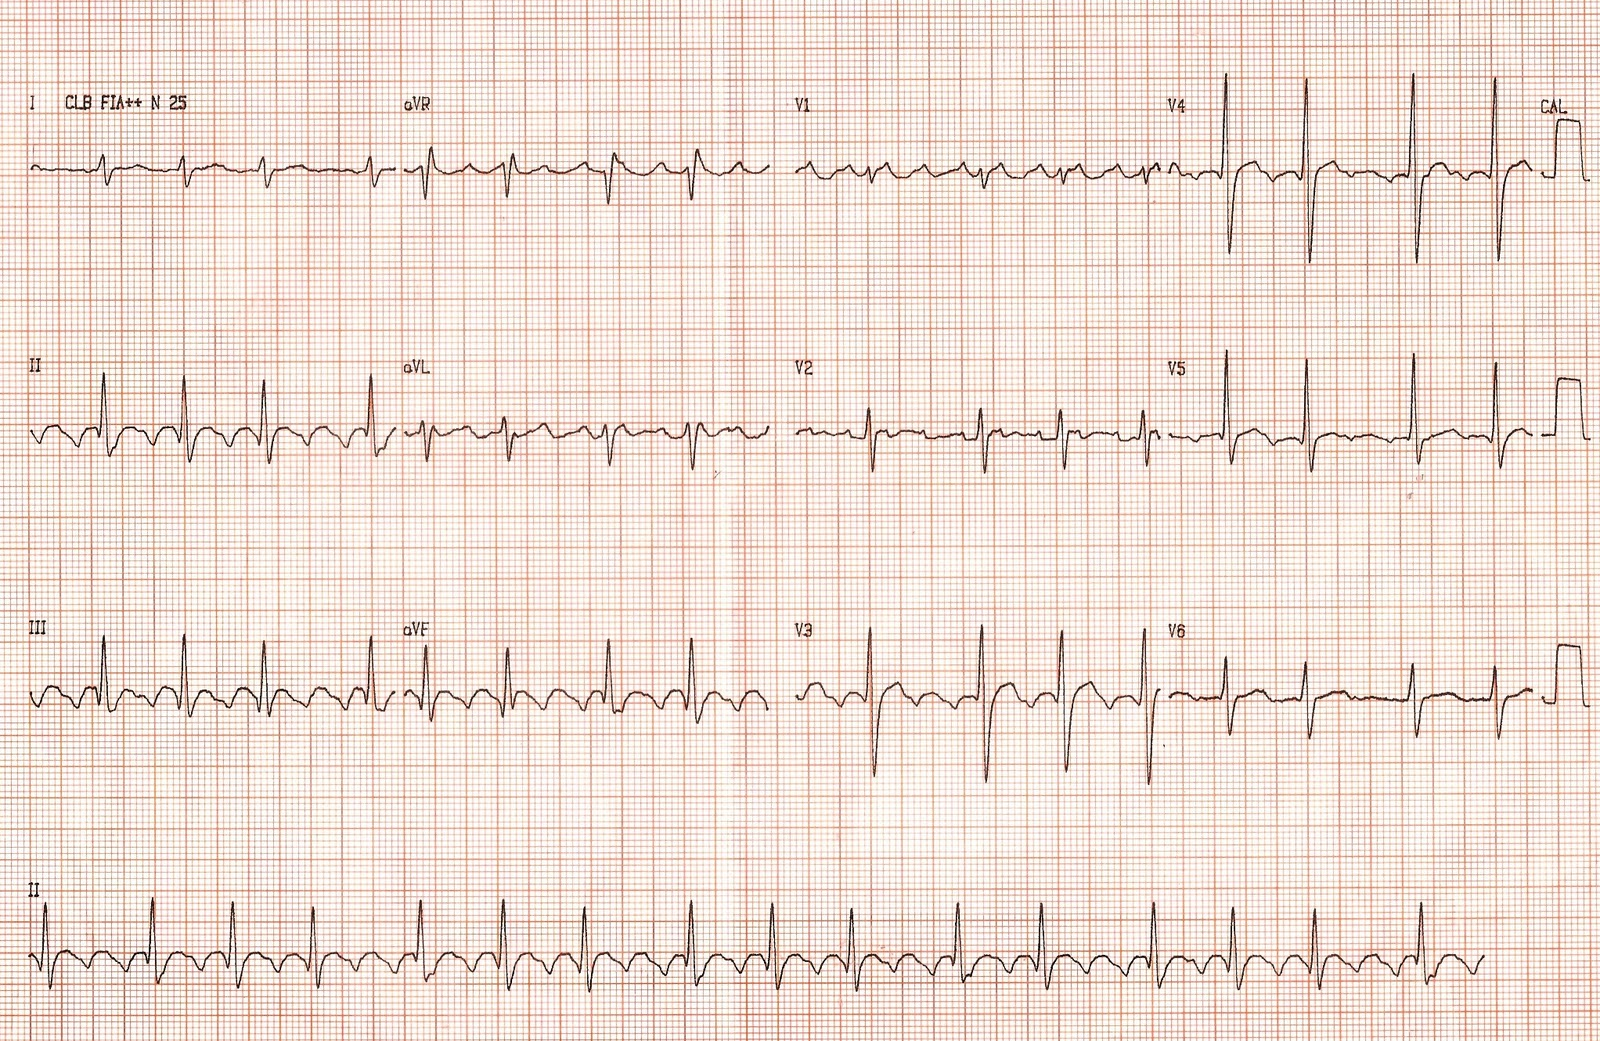 Atrial Flutter - Life in the Fast Lane ECG Library